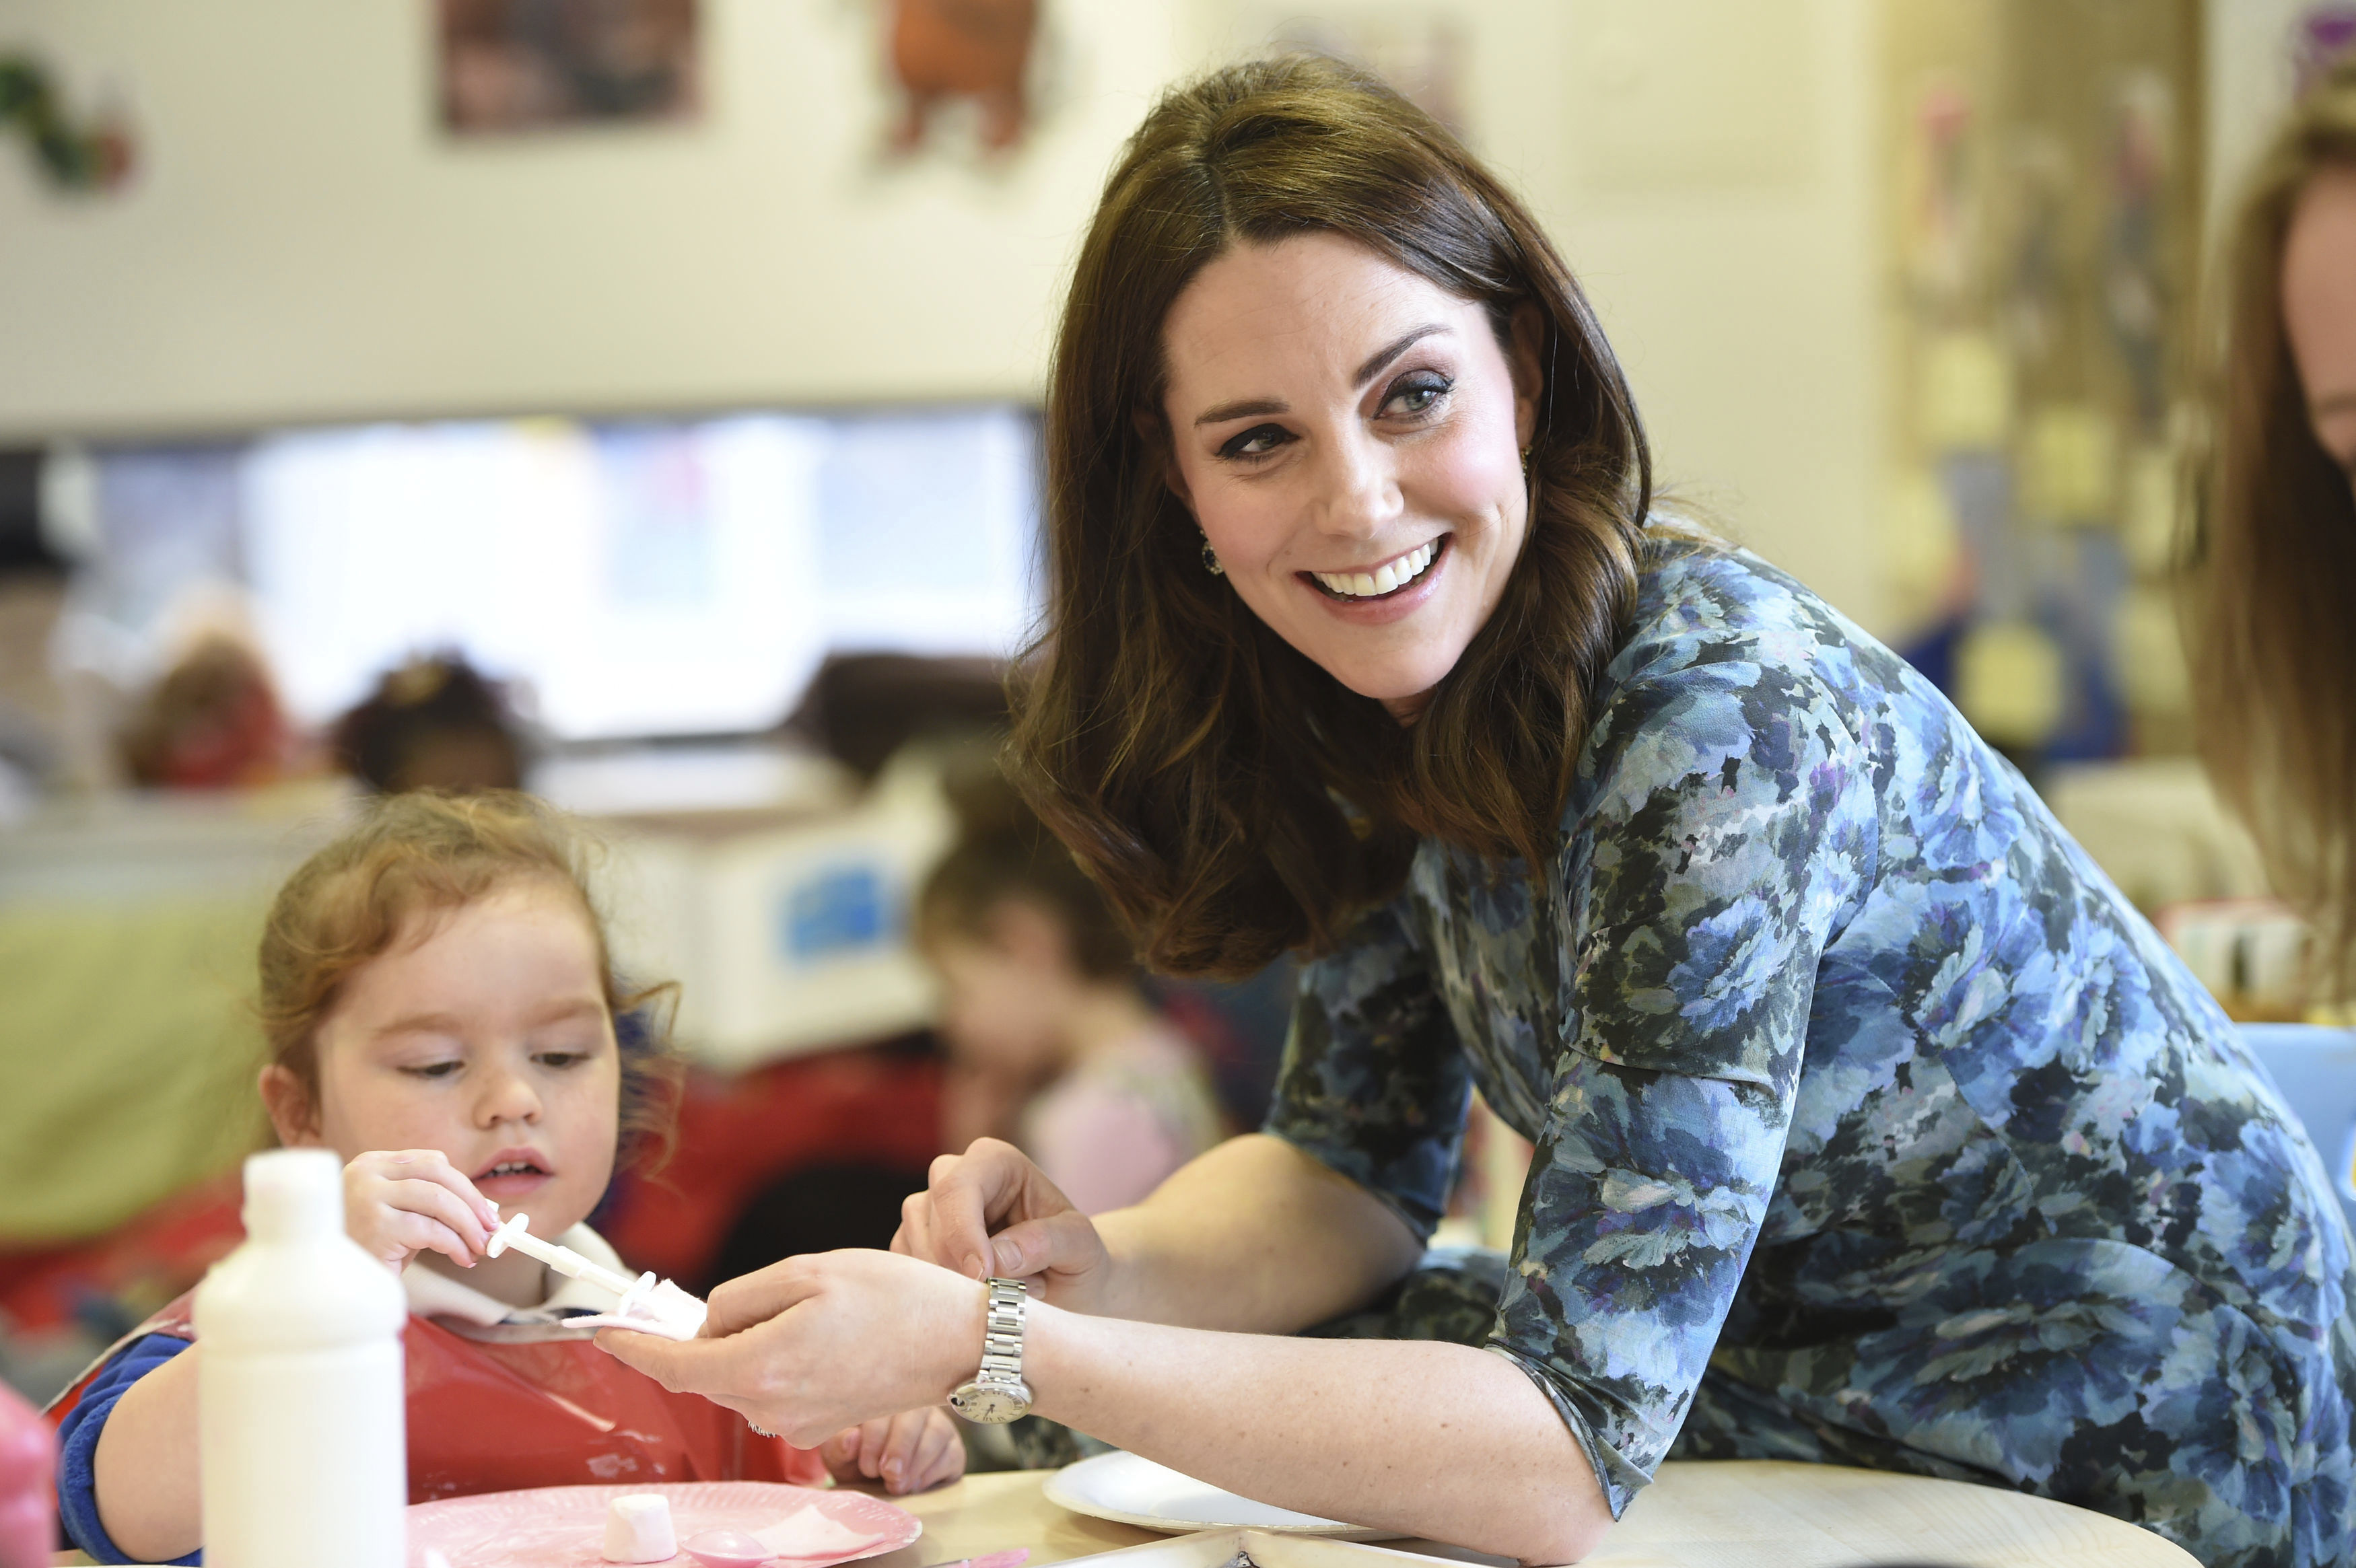 <div class='meta'><div class='origin-logo' data-origin='AP'></div><span class='caption-text' data-credit='Eddie Mulholland/Pool Photo via AP'>Kate, Duchess of Cambridge smiles as she interacts with children Wednesday Jan. 10, 2018 during a visit to the Reach Academy Feltham, in London.</span></div>